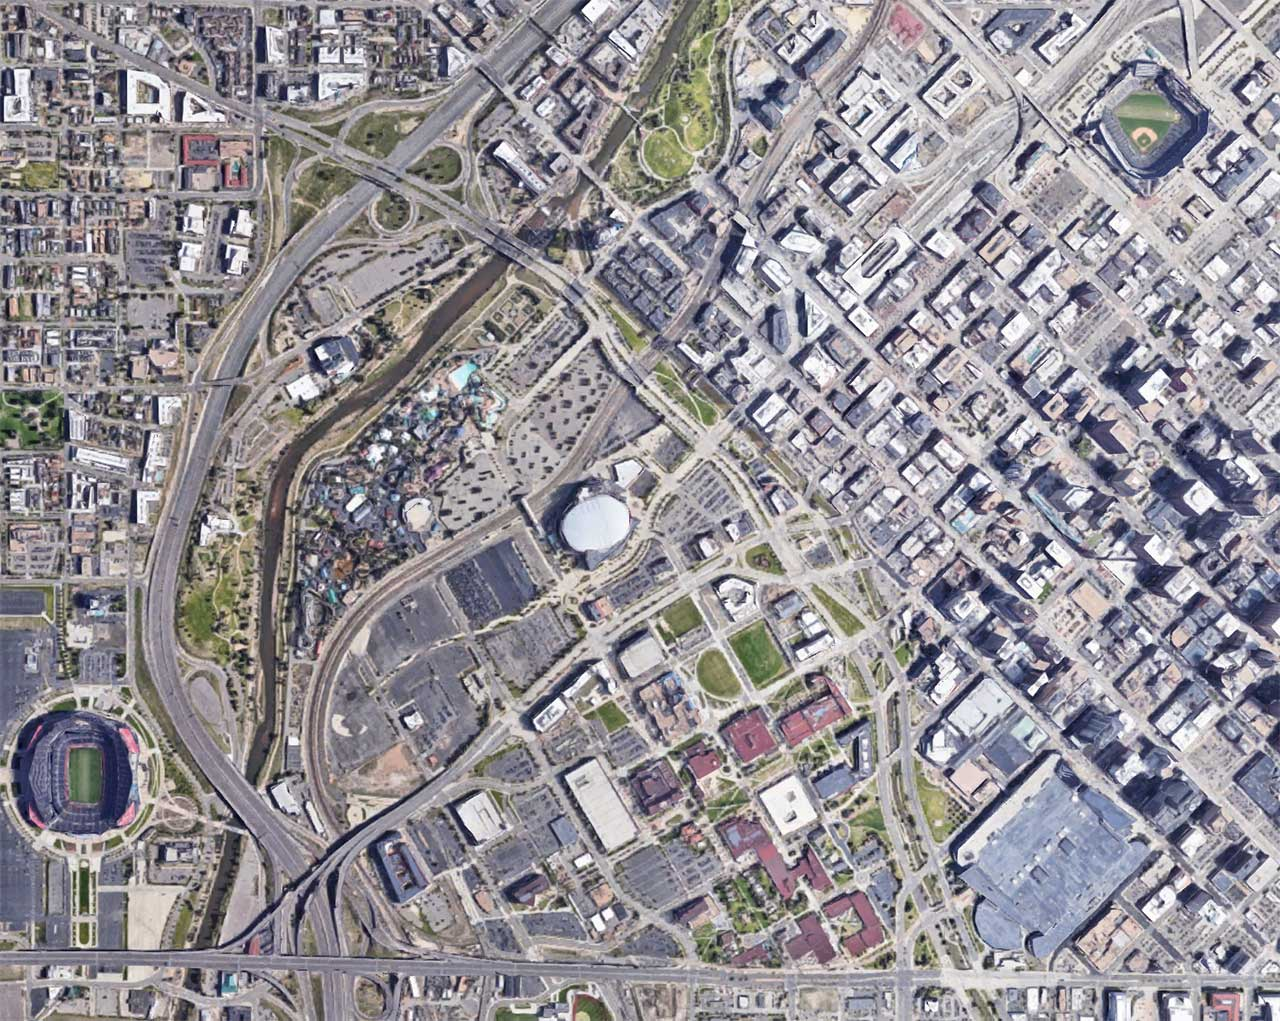 Overhead view of downtown Denver with Colorado Convention Center and stadiums, from Google Maps.